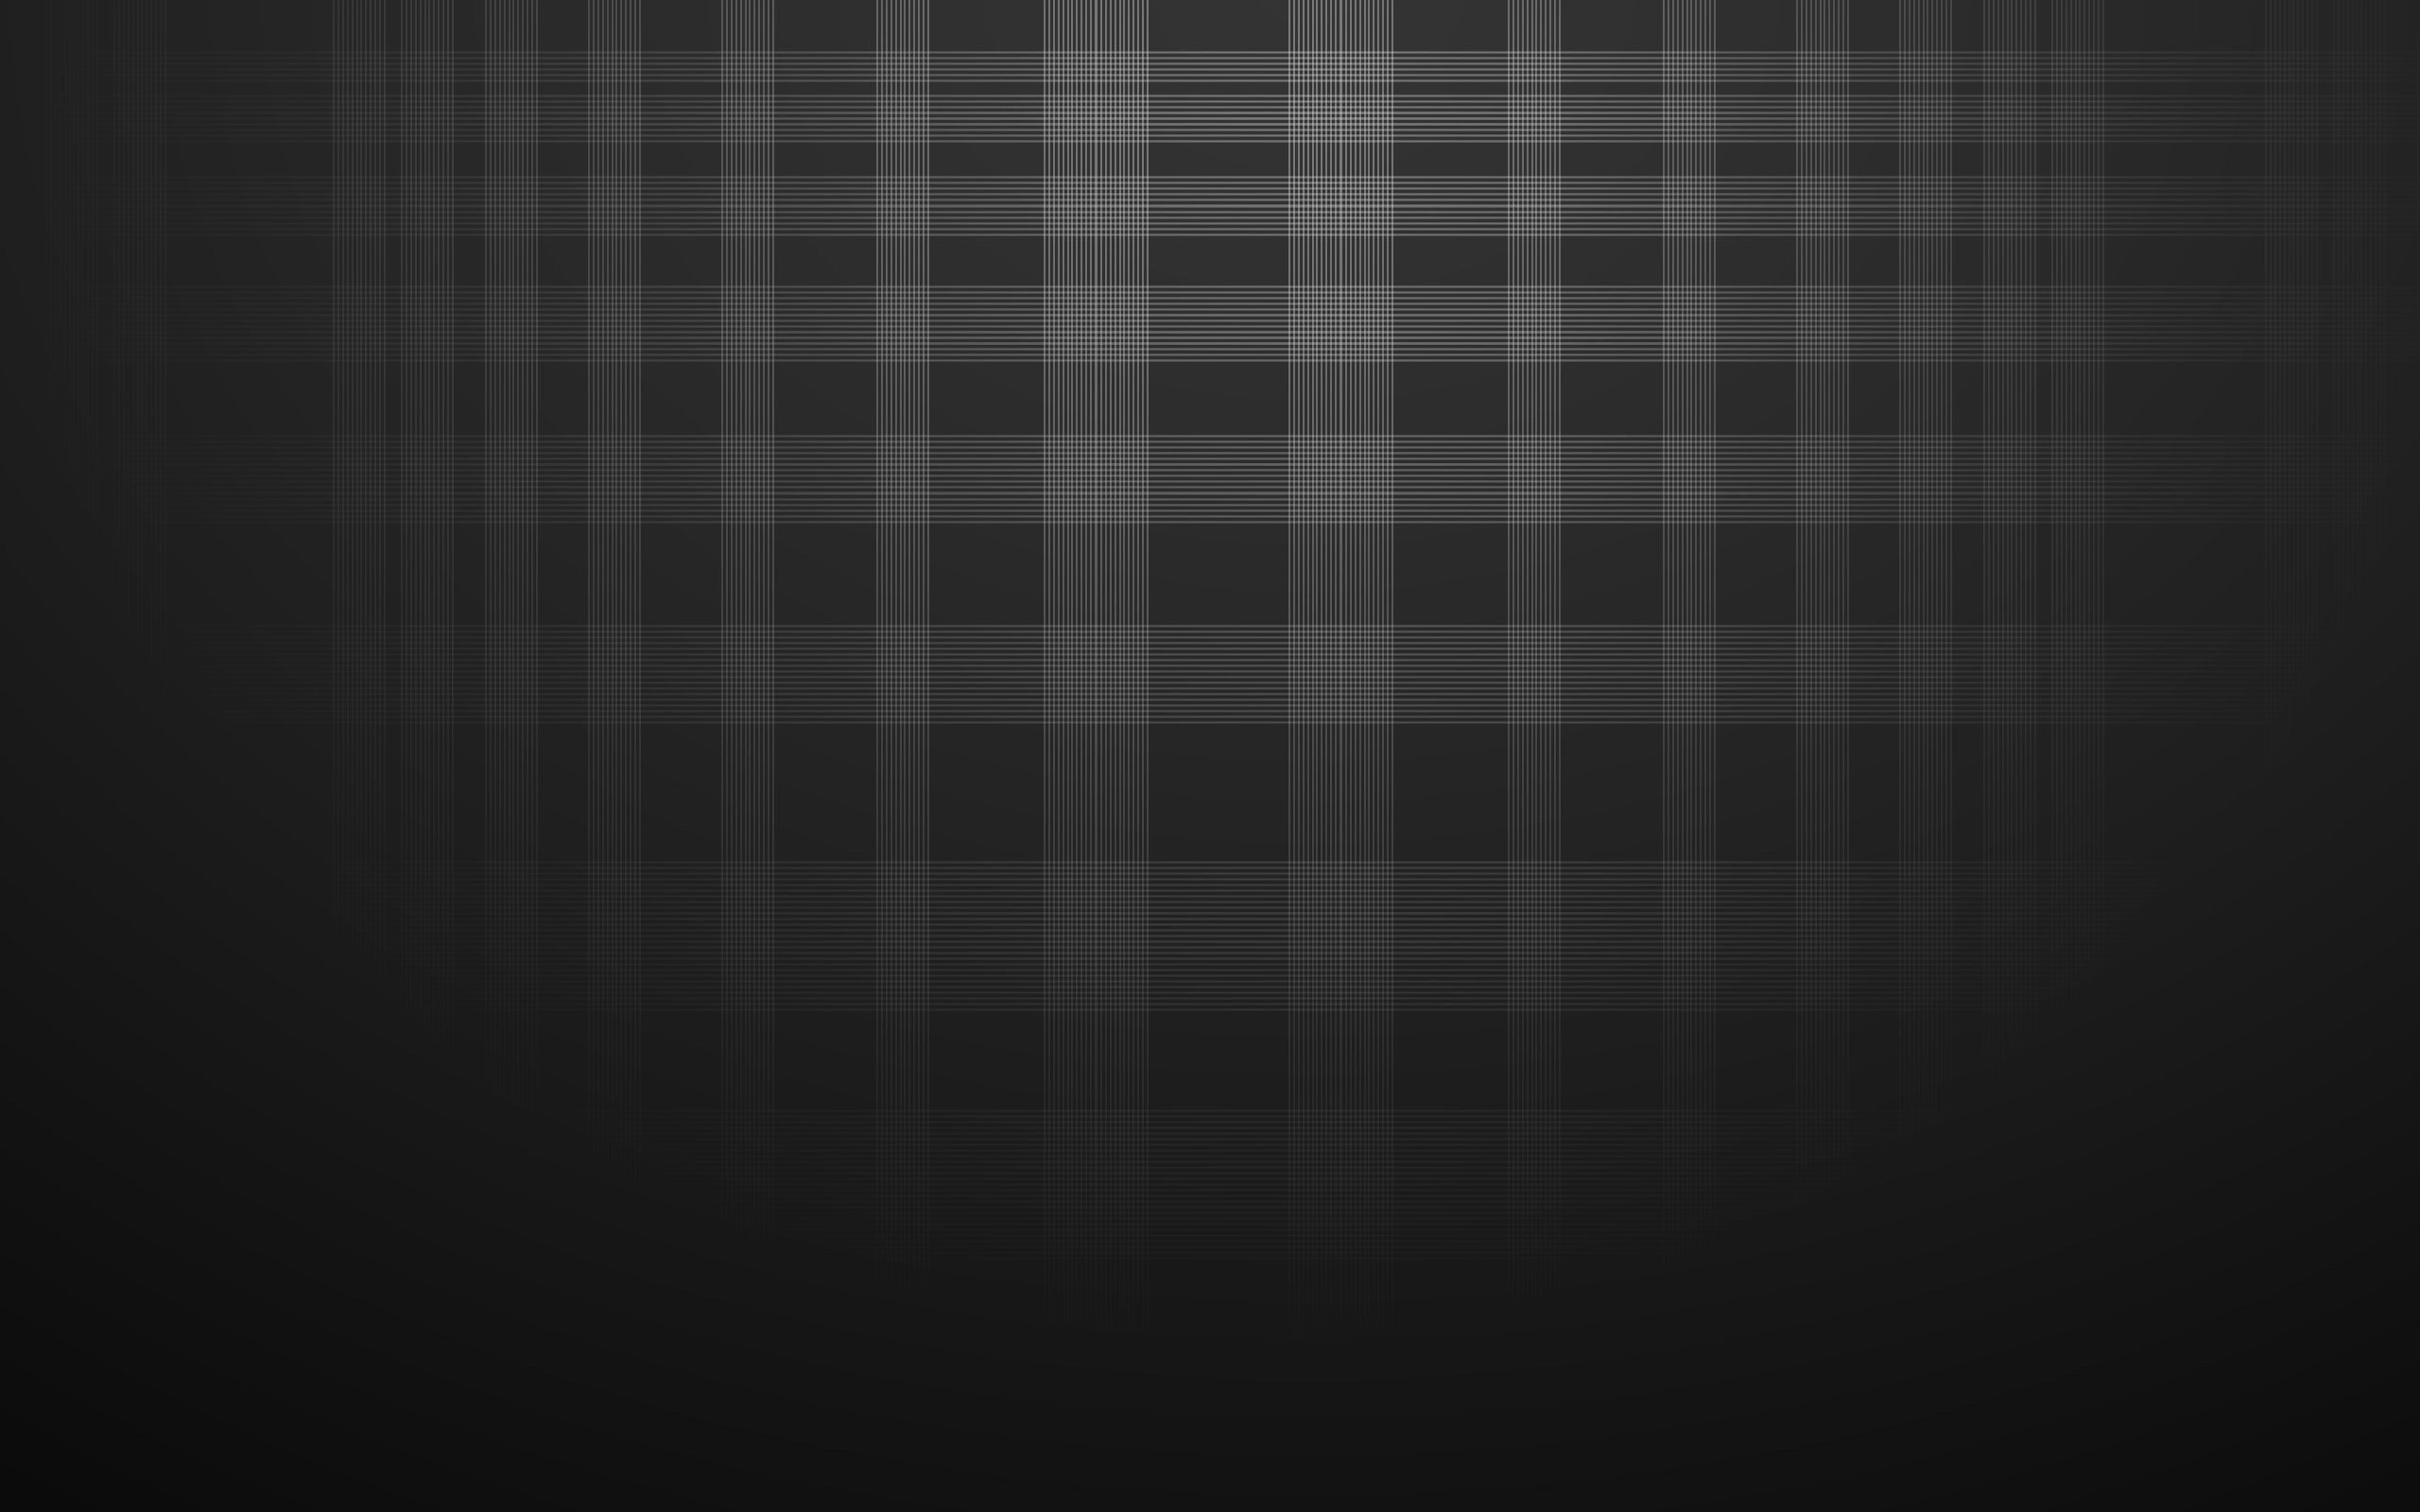 Grau Wallpaper gray plaid pattern wallpapers gray plaid pattern stock photos